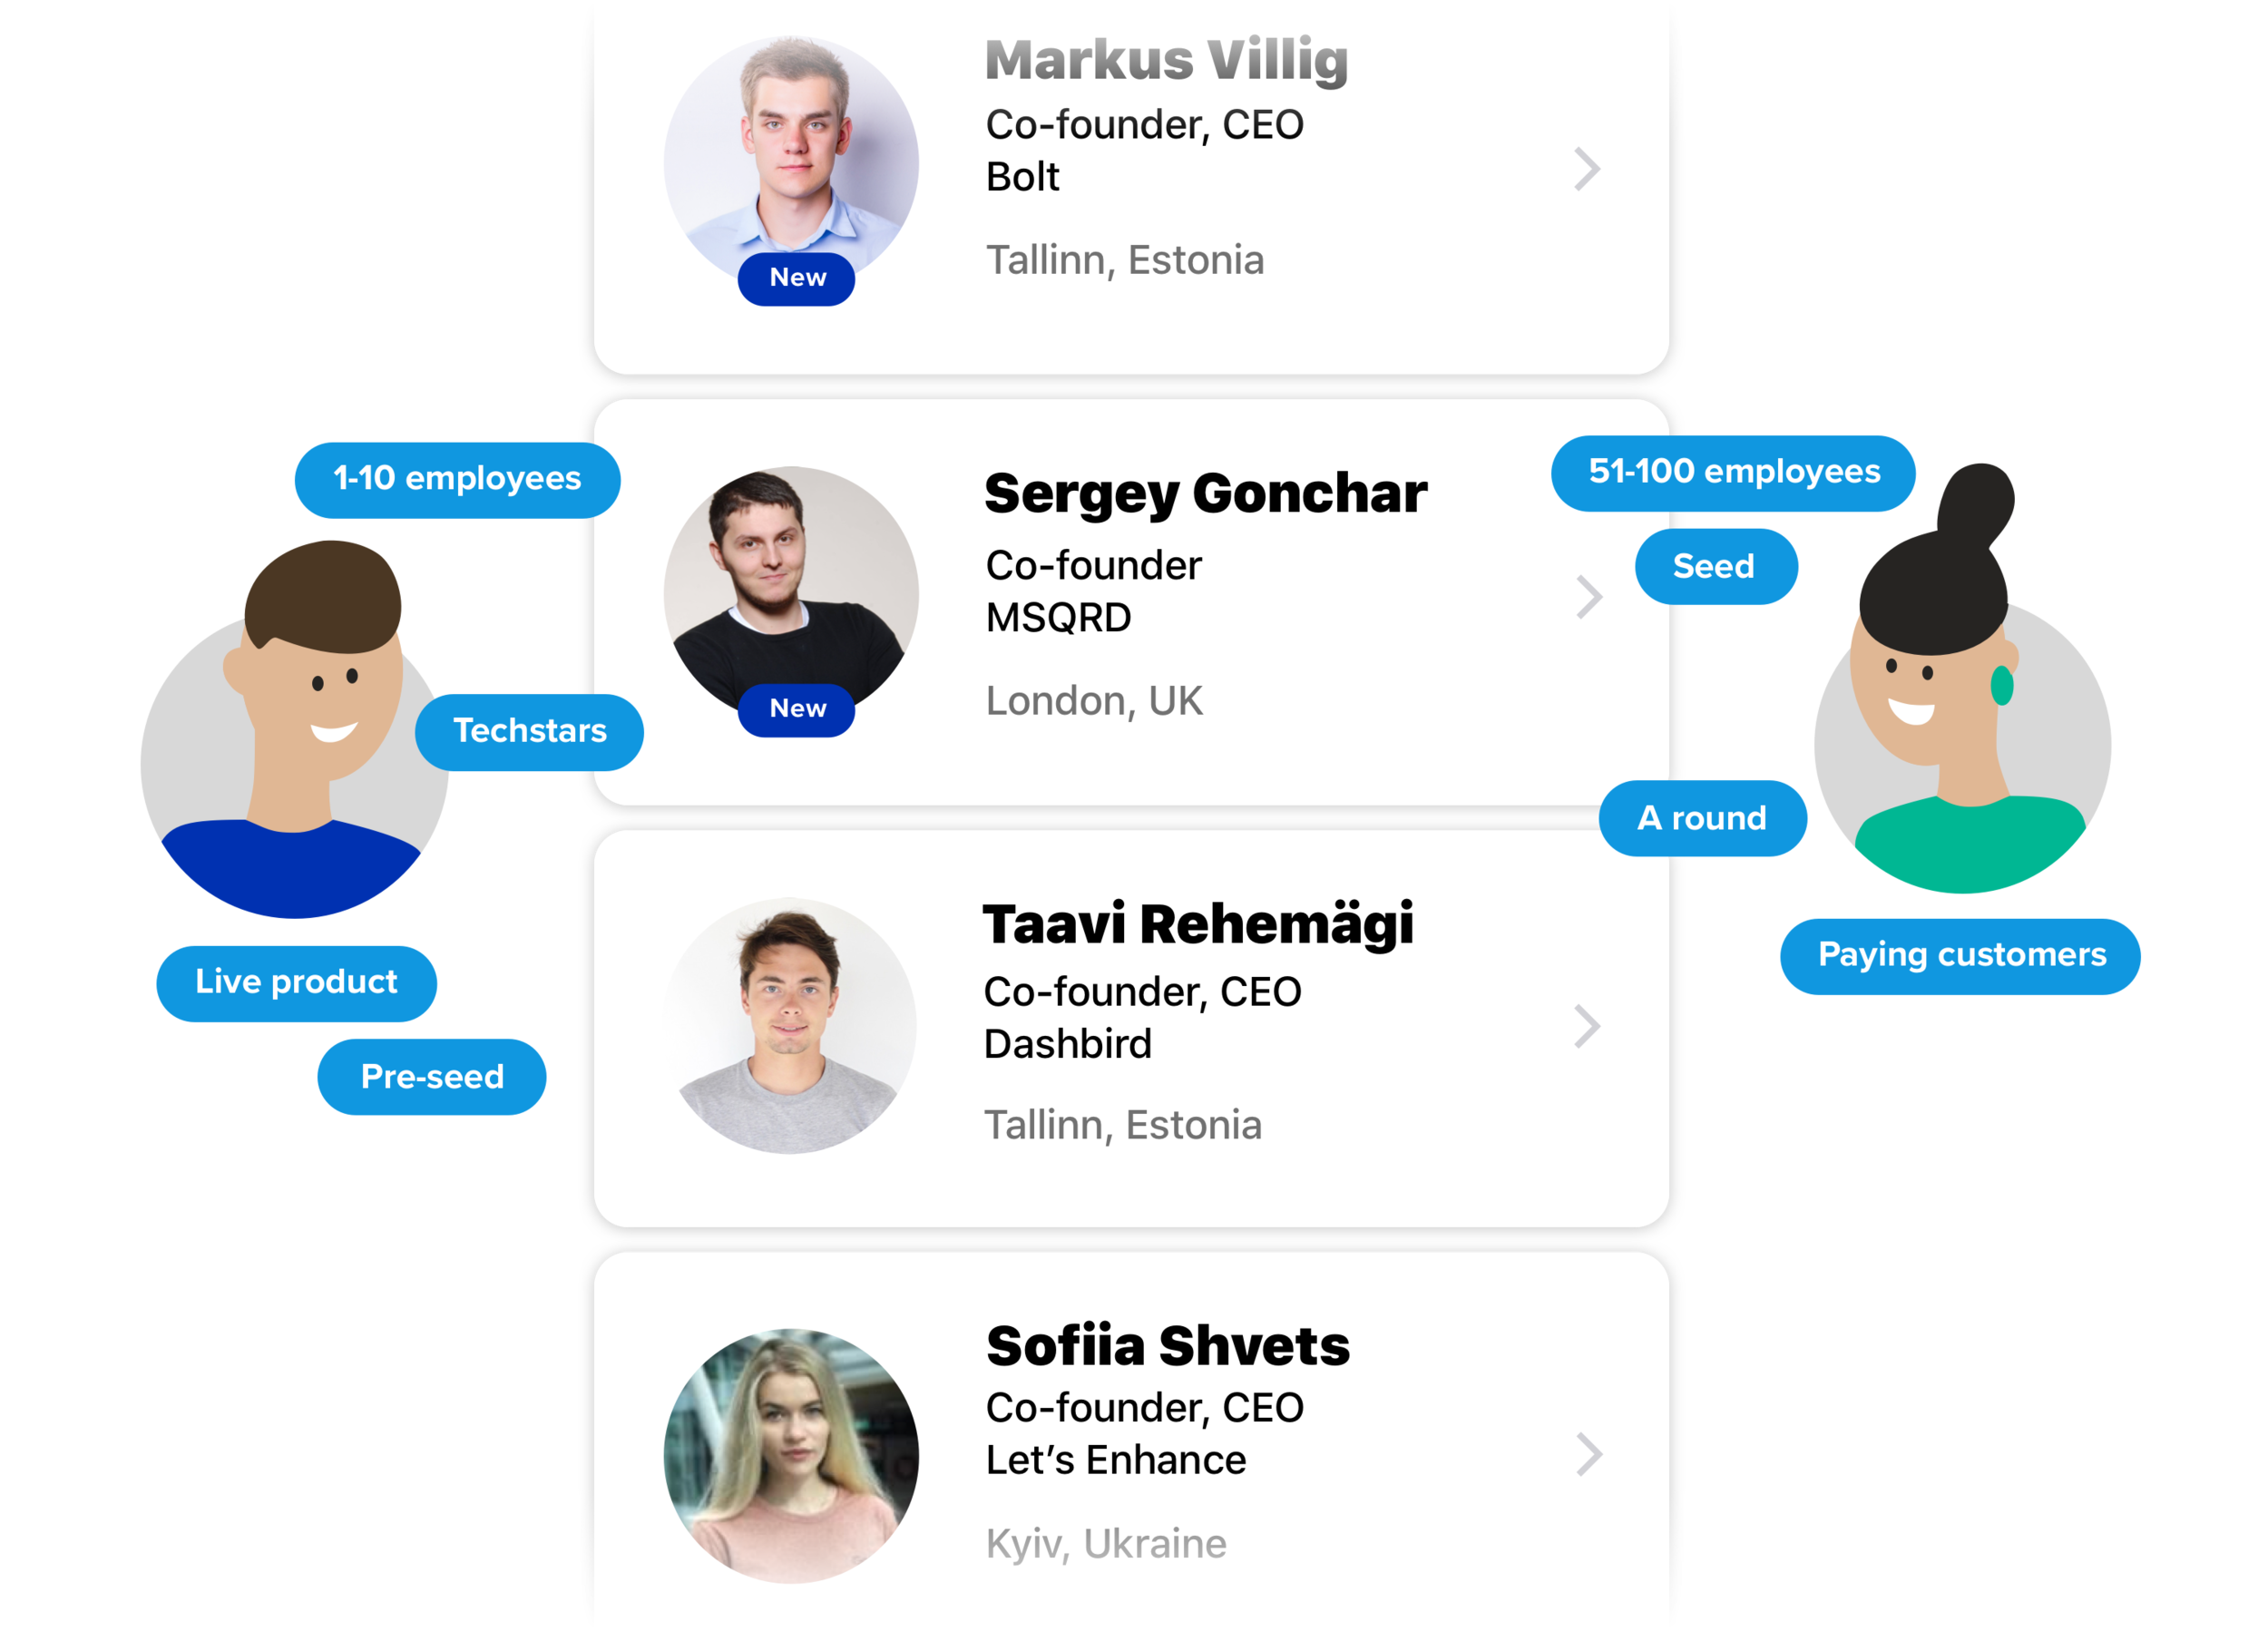 salto-startup-founders-network-meet-business-partner-investor-or-friends-build-connections.png